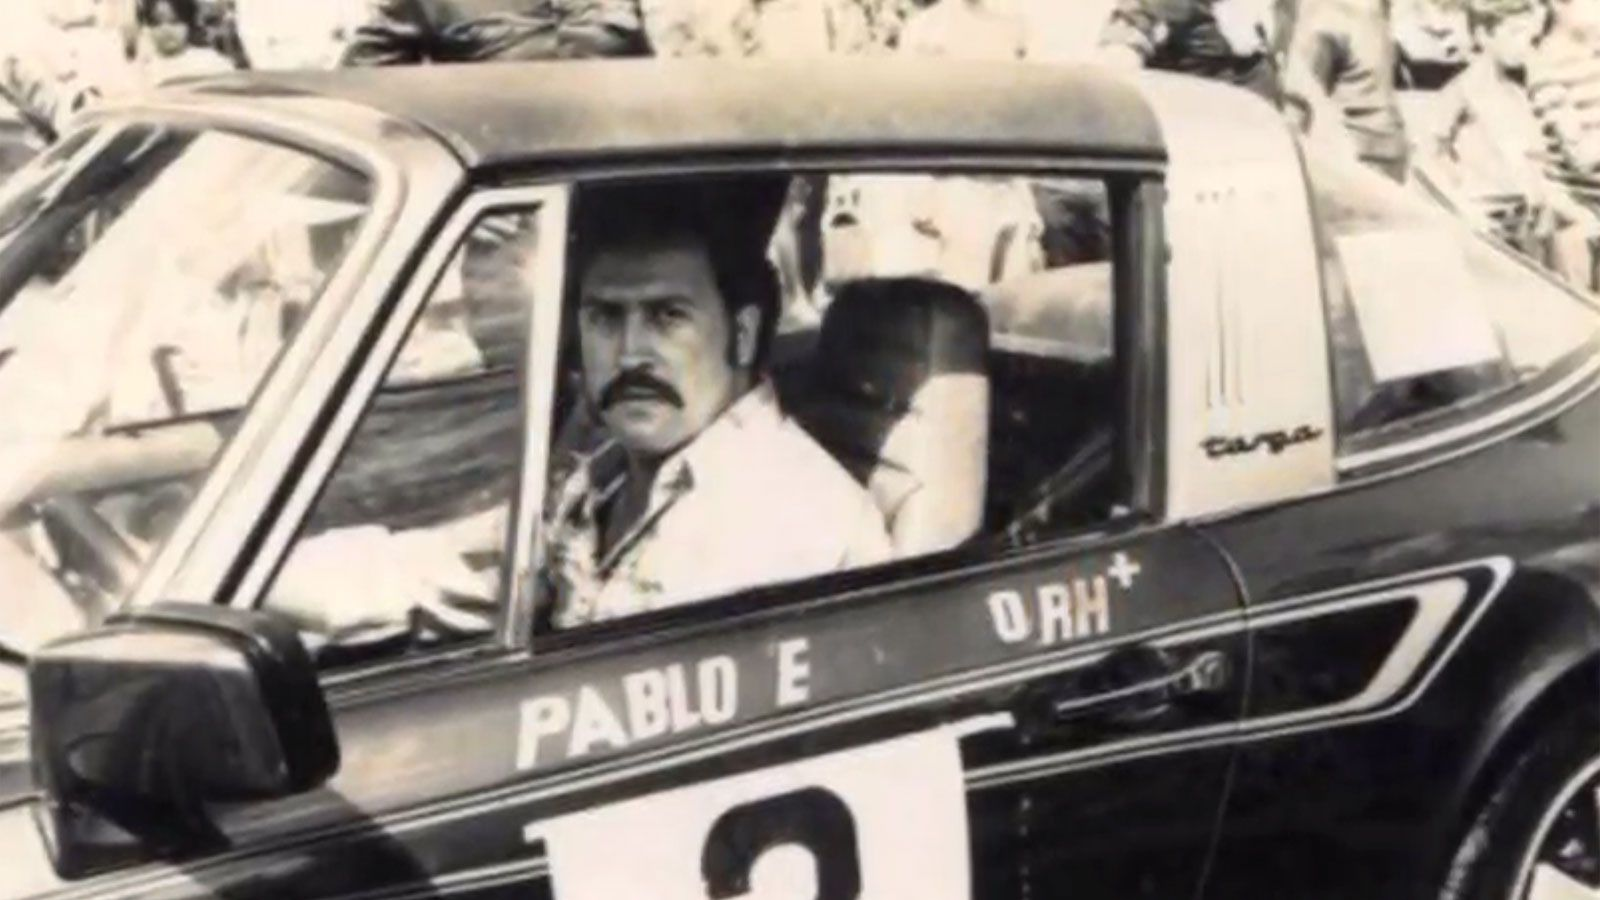 Escobar eventually graduated to more powerful machinery.